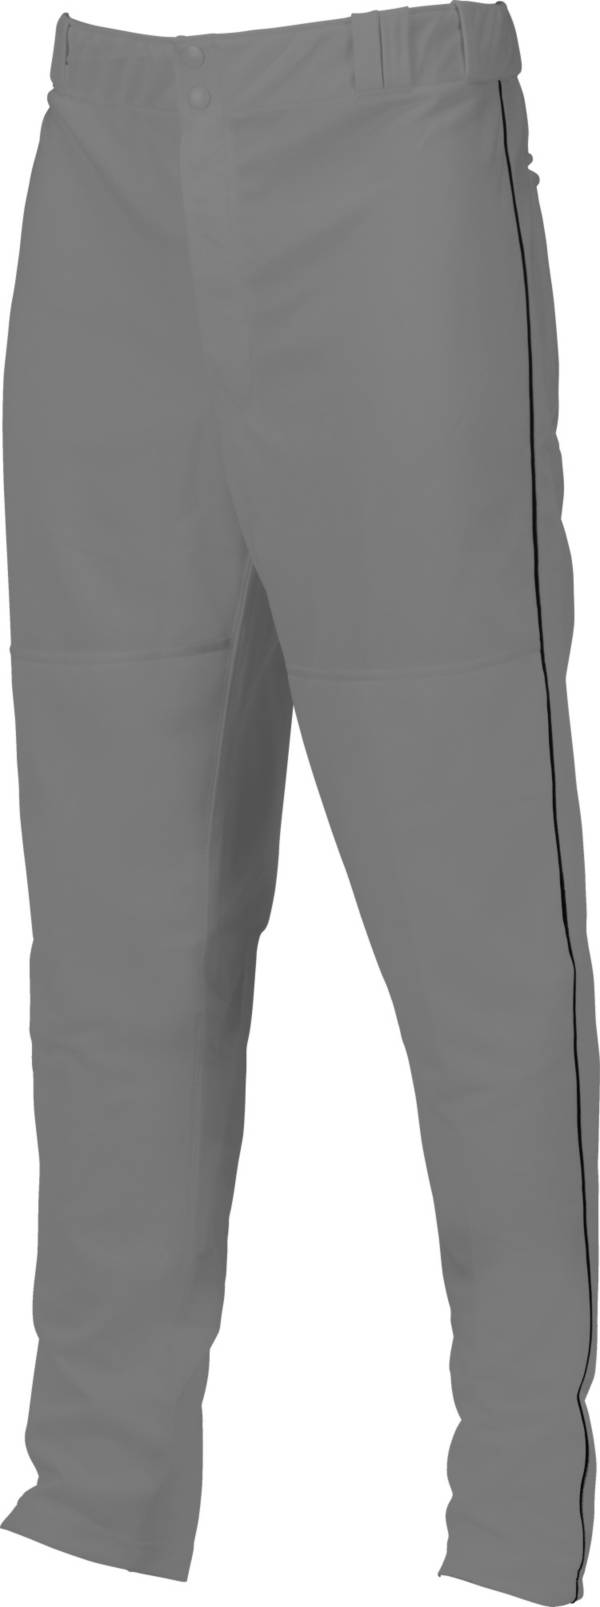 Marucci Men's Double Knit Piped Baseball Pants product image